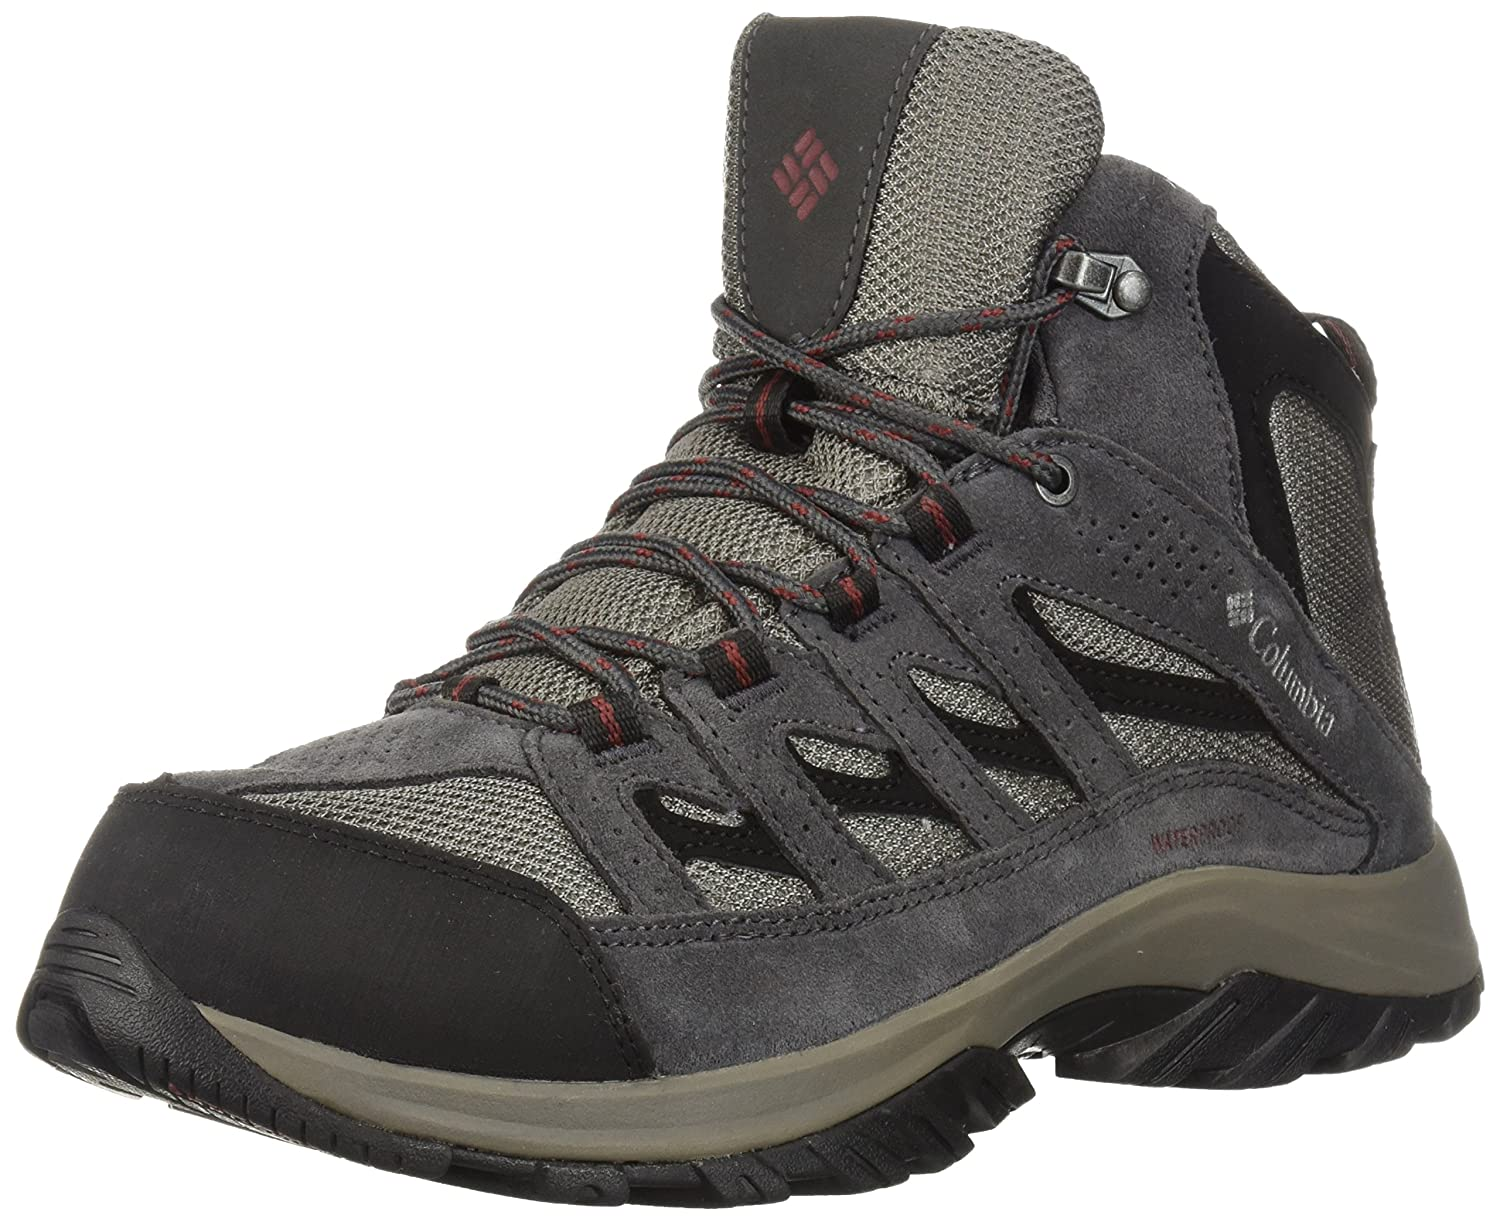 Columbia Men's Crestwood MID Waterproof Hiking Boot 176538